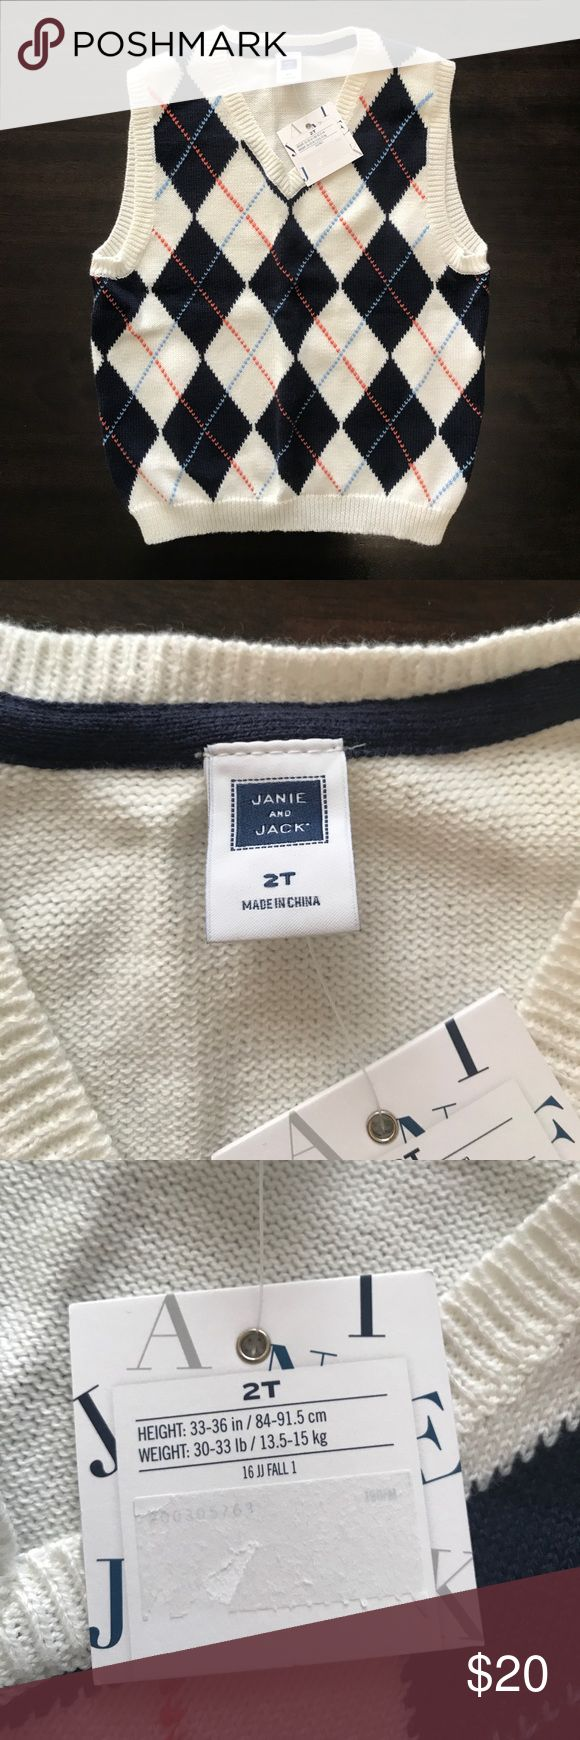 NWT Janie And Jack Argyle Sweater Vest 100% cotton boys argyle sweater vest. Cream, Navy, baby blue, and orange tones. Janie and Jack Shirts & Tops Sweaters